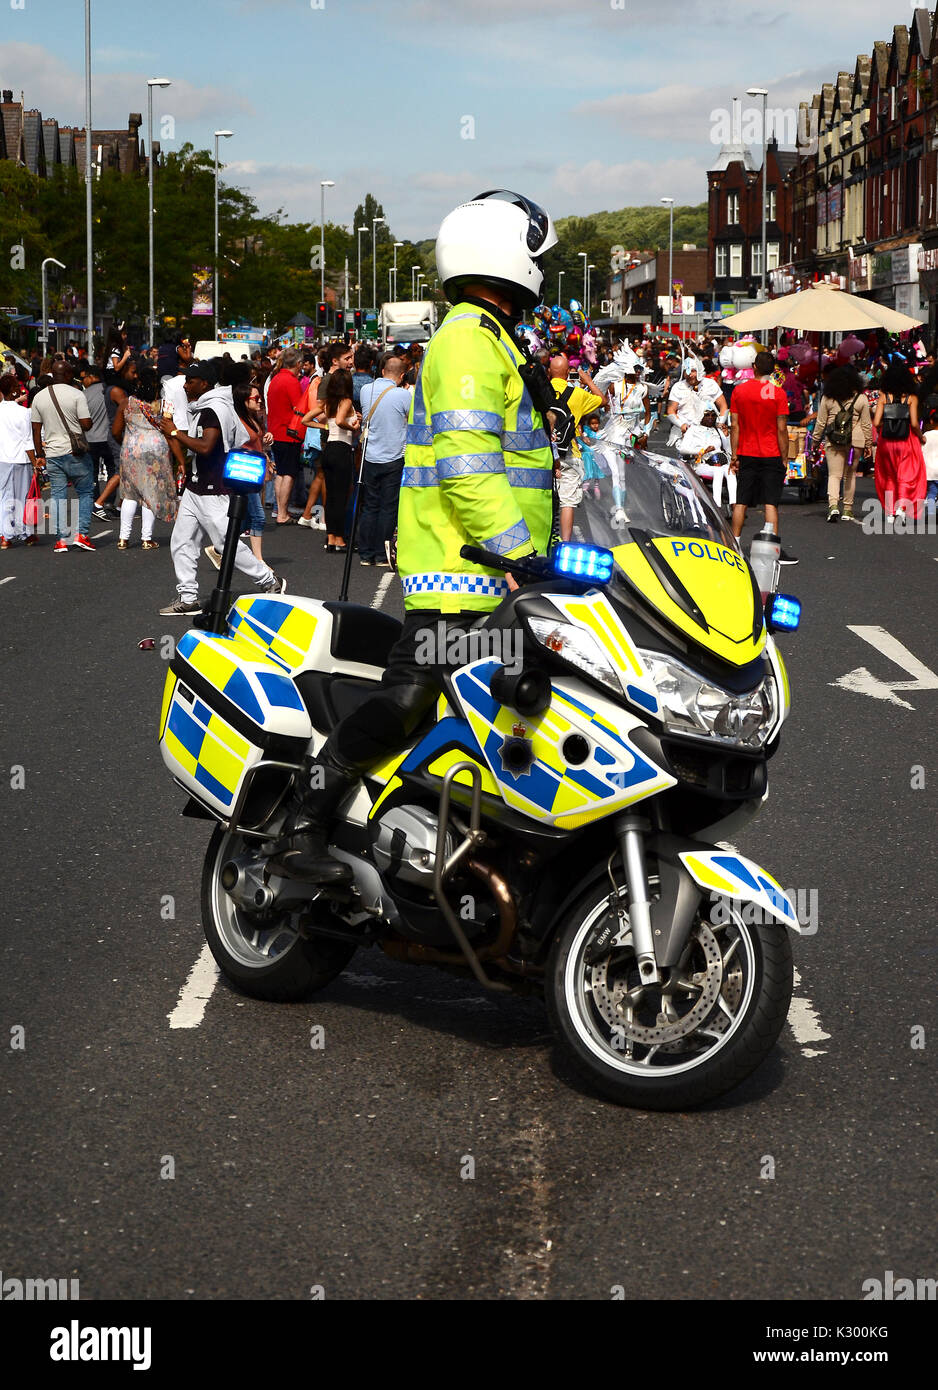 Police motorcycle at incident - Stock Image